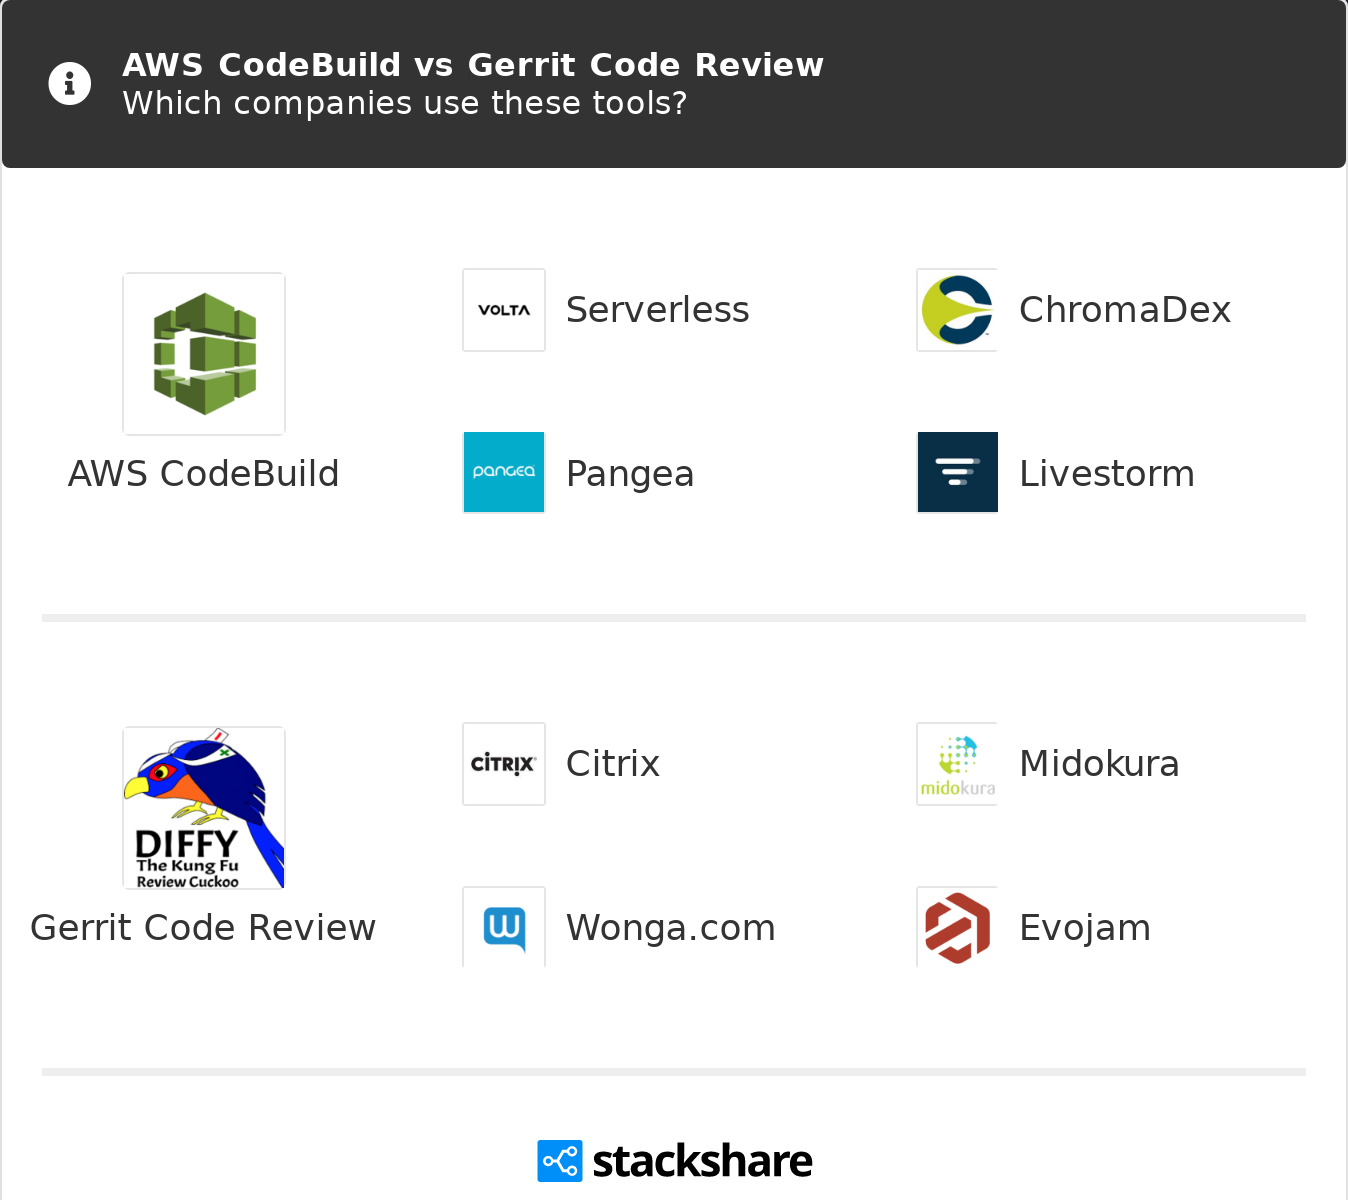 AWS CodeBuild vs Gerrit Code Review | What are the differences?